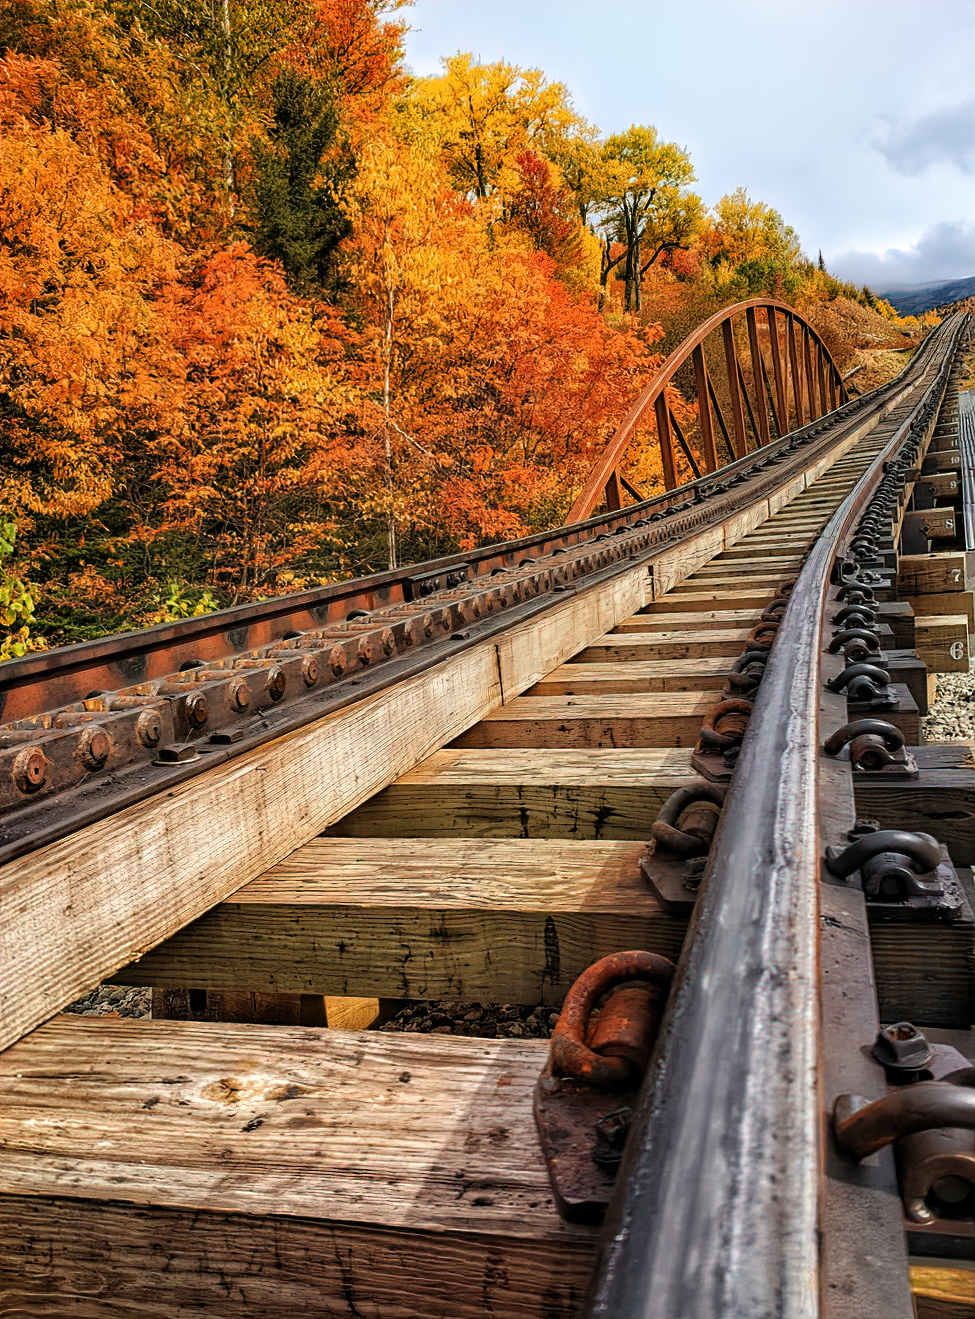 Mount Washington Cog Railway offers best views during the fall.